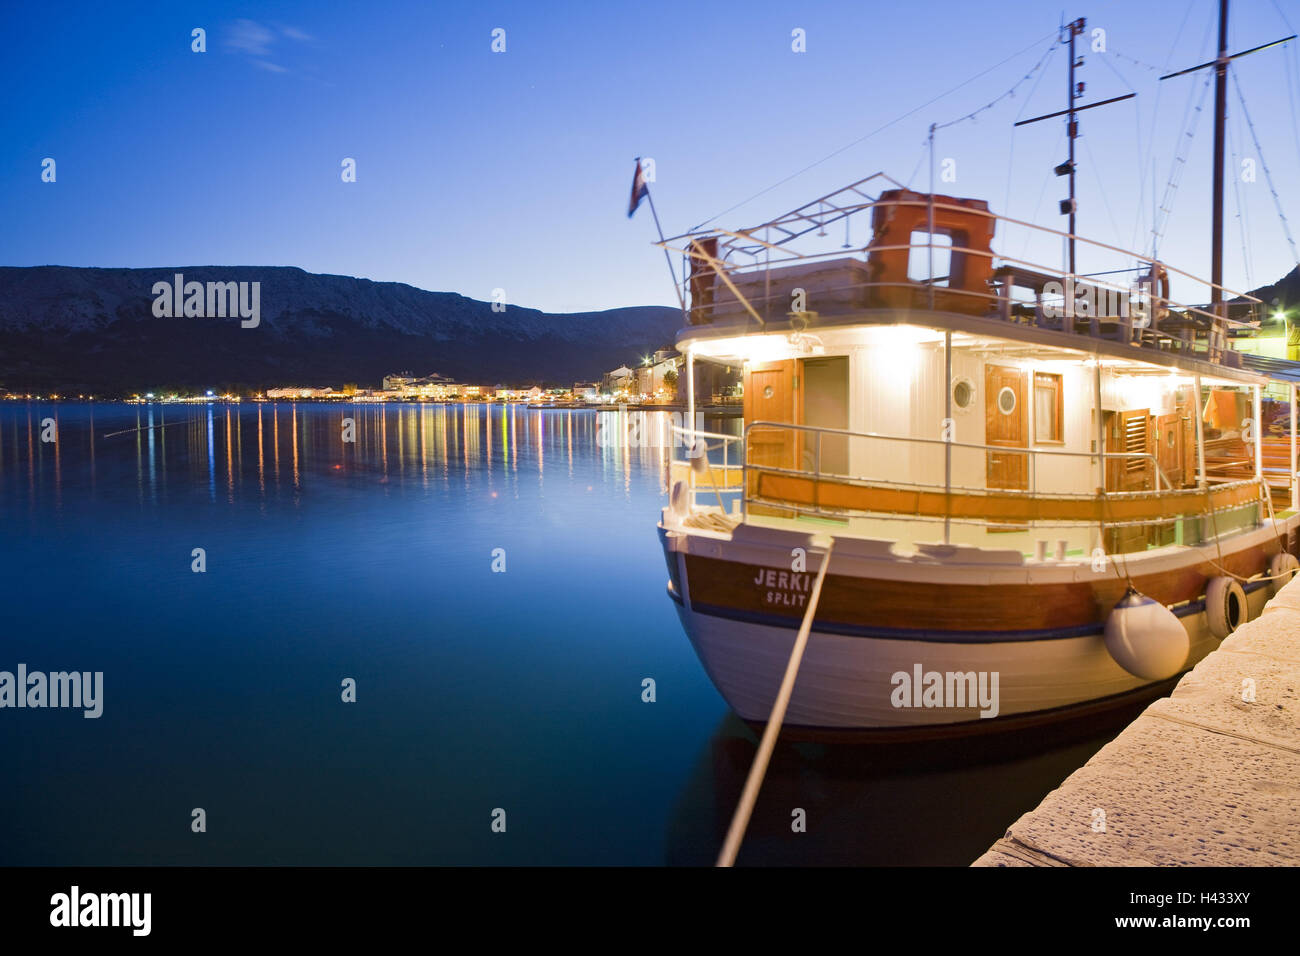 Croatia, Kvarner gulf, Krk (island), city of Baska, evening, harbour, boat, - Stock Image